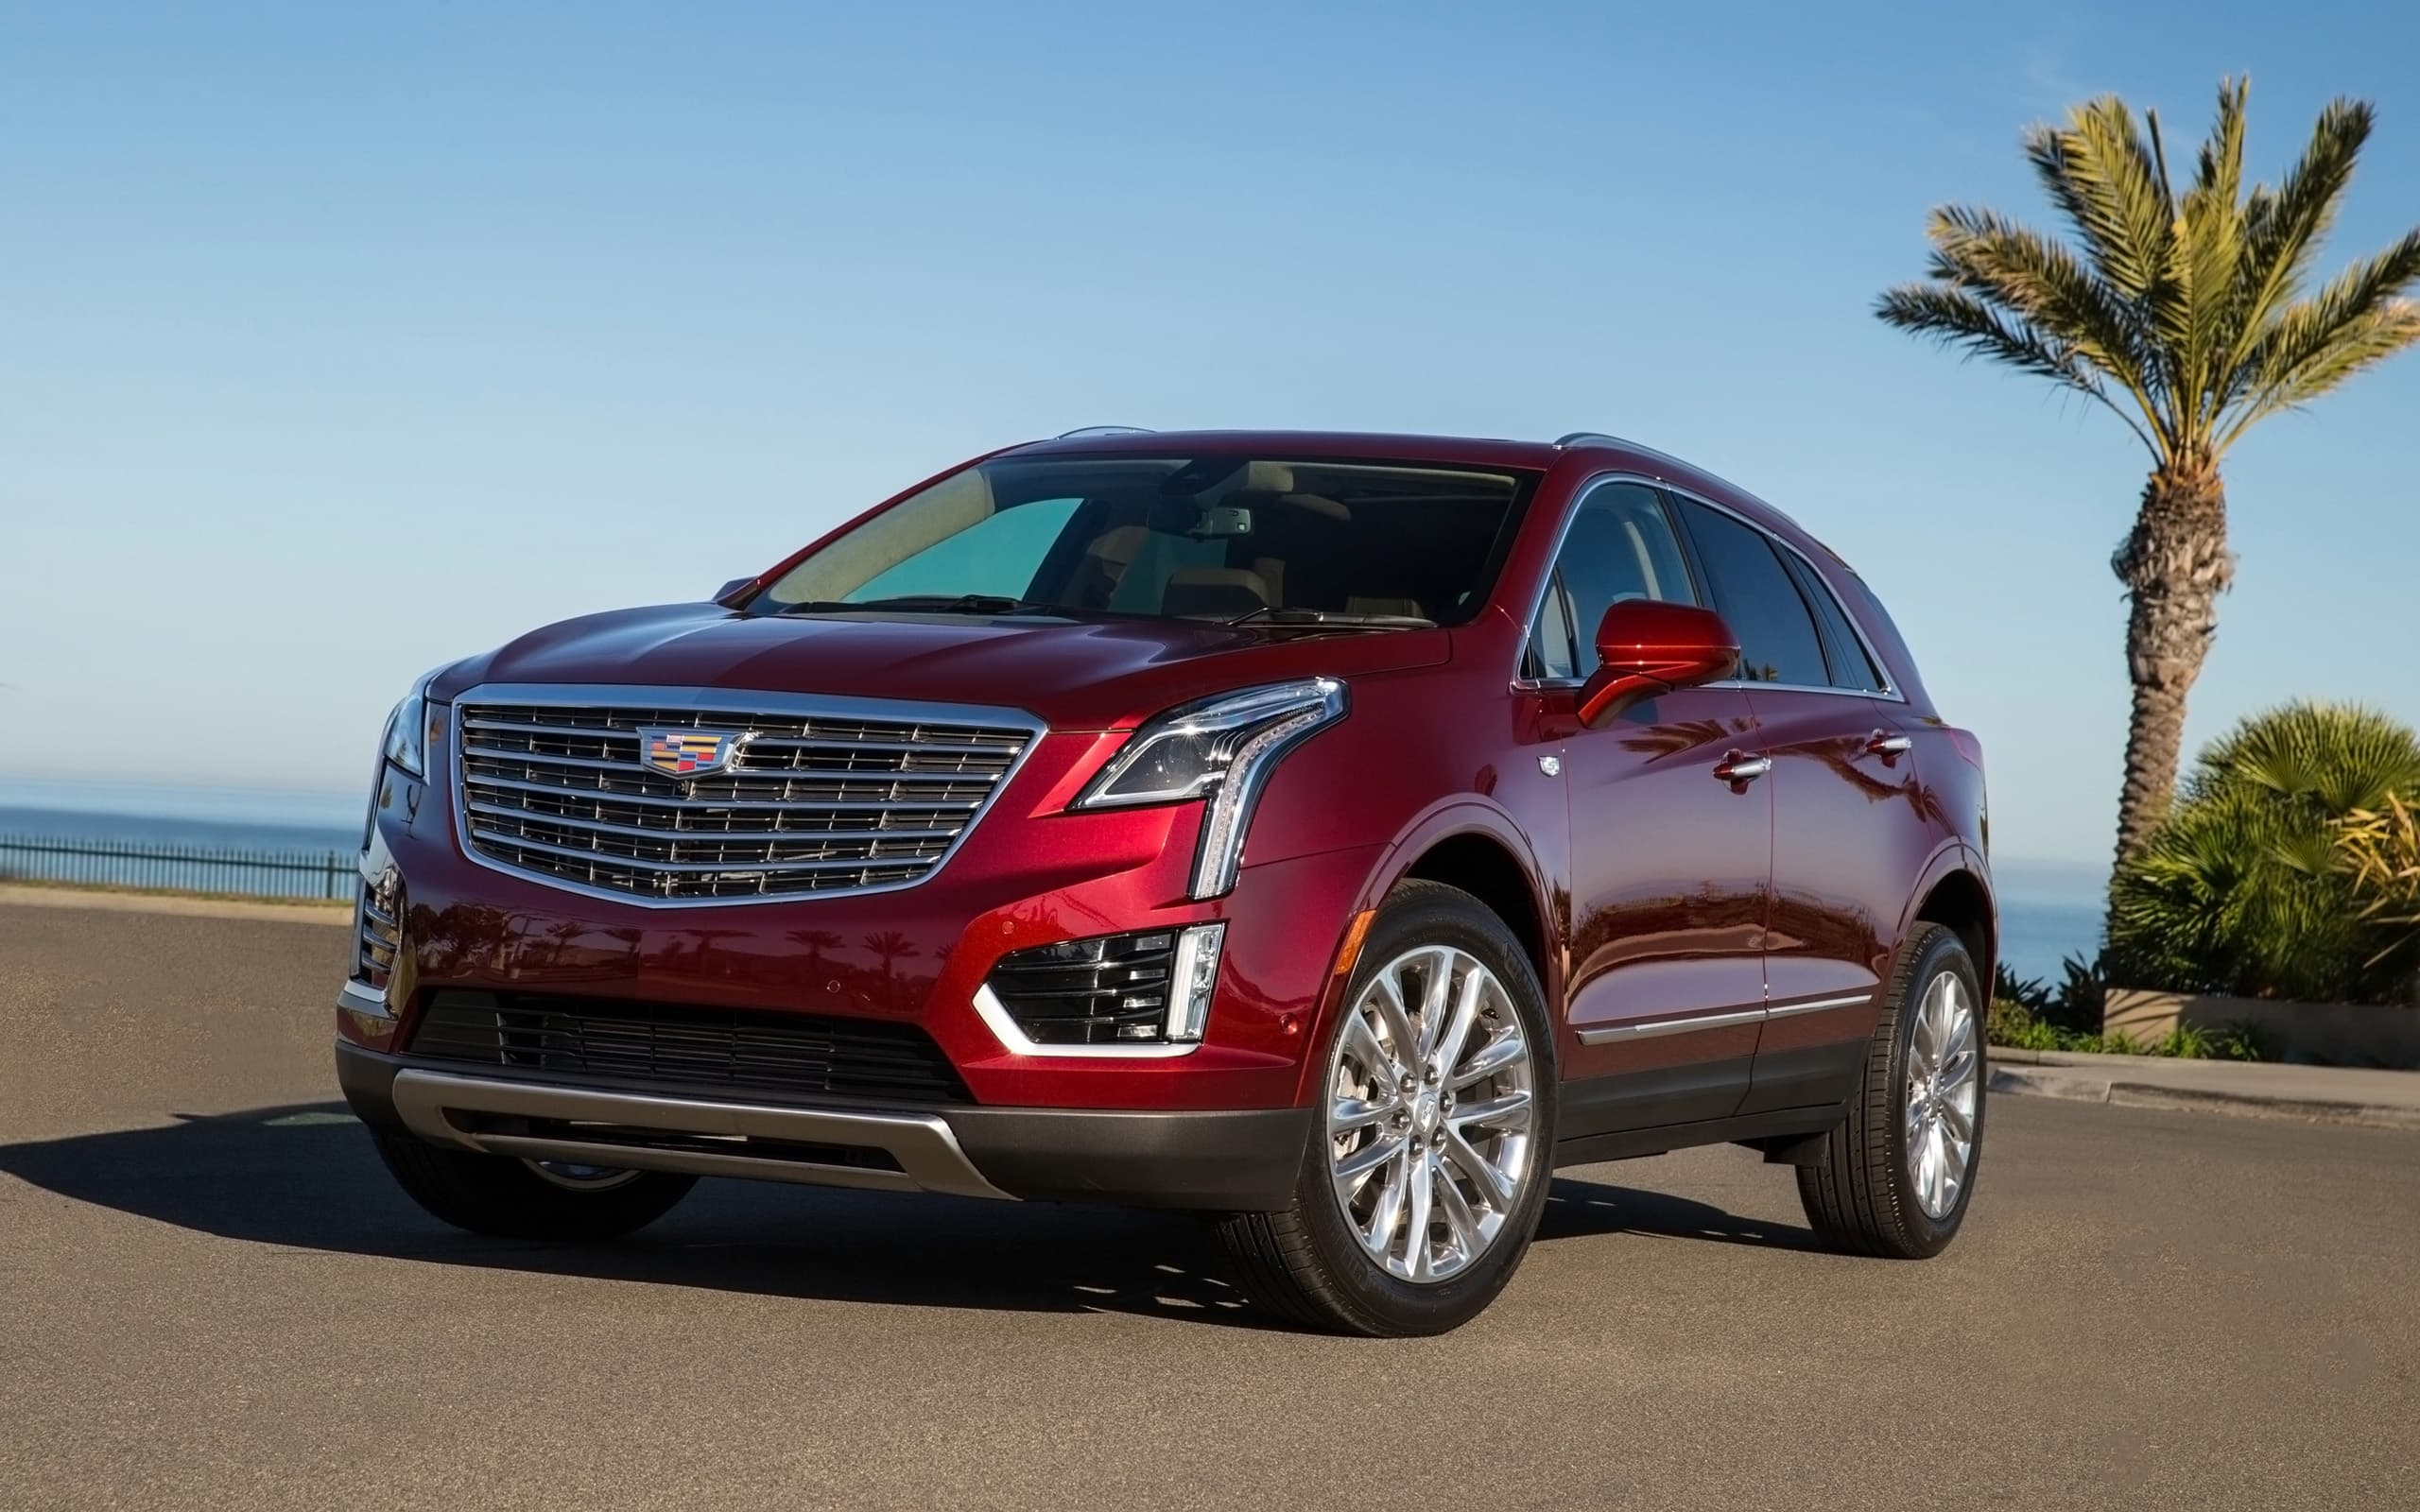 2017 Cadillac Xt5 Wallpapers Hd Suv Black Red White Silver